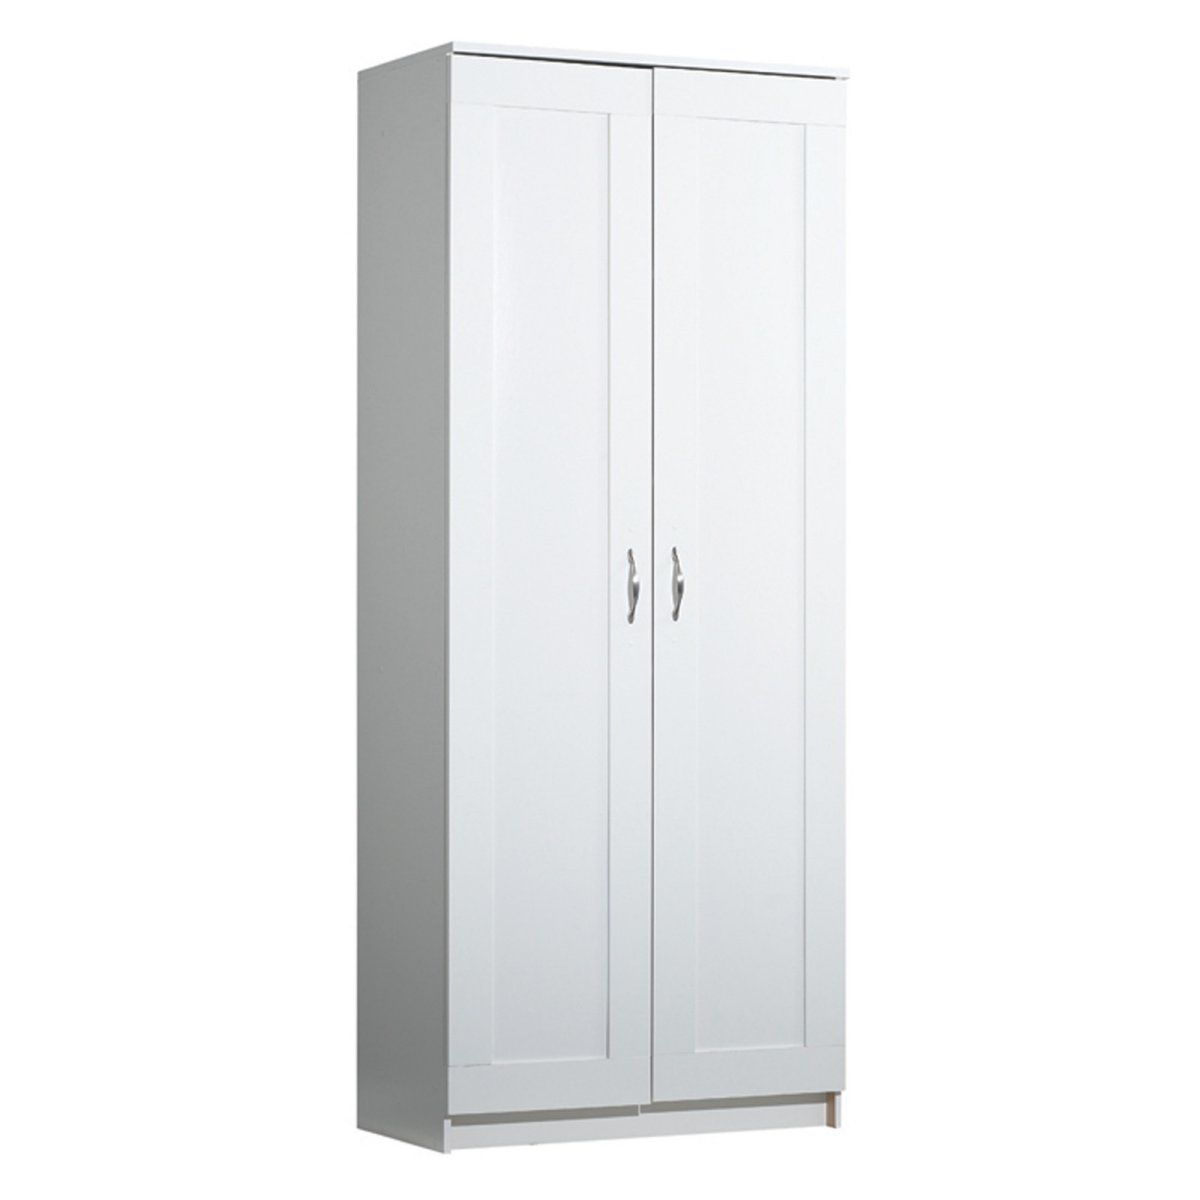 Akadahome 2 Door Kitchen Storage Cabinet White Kitchen Cabinet Storage Dining Storage Metal Storage Cabinets